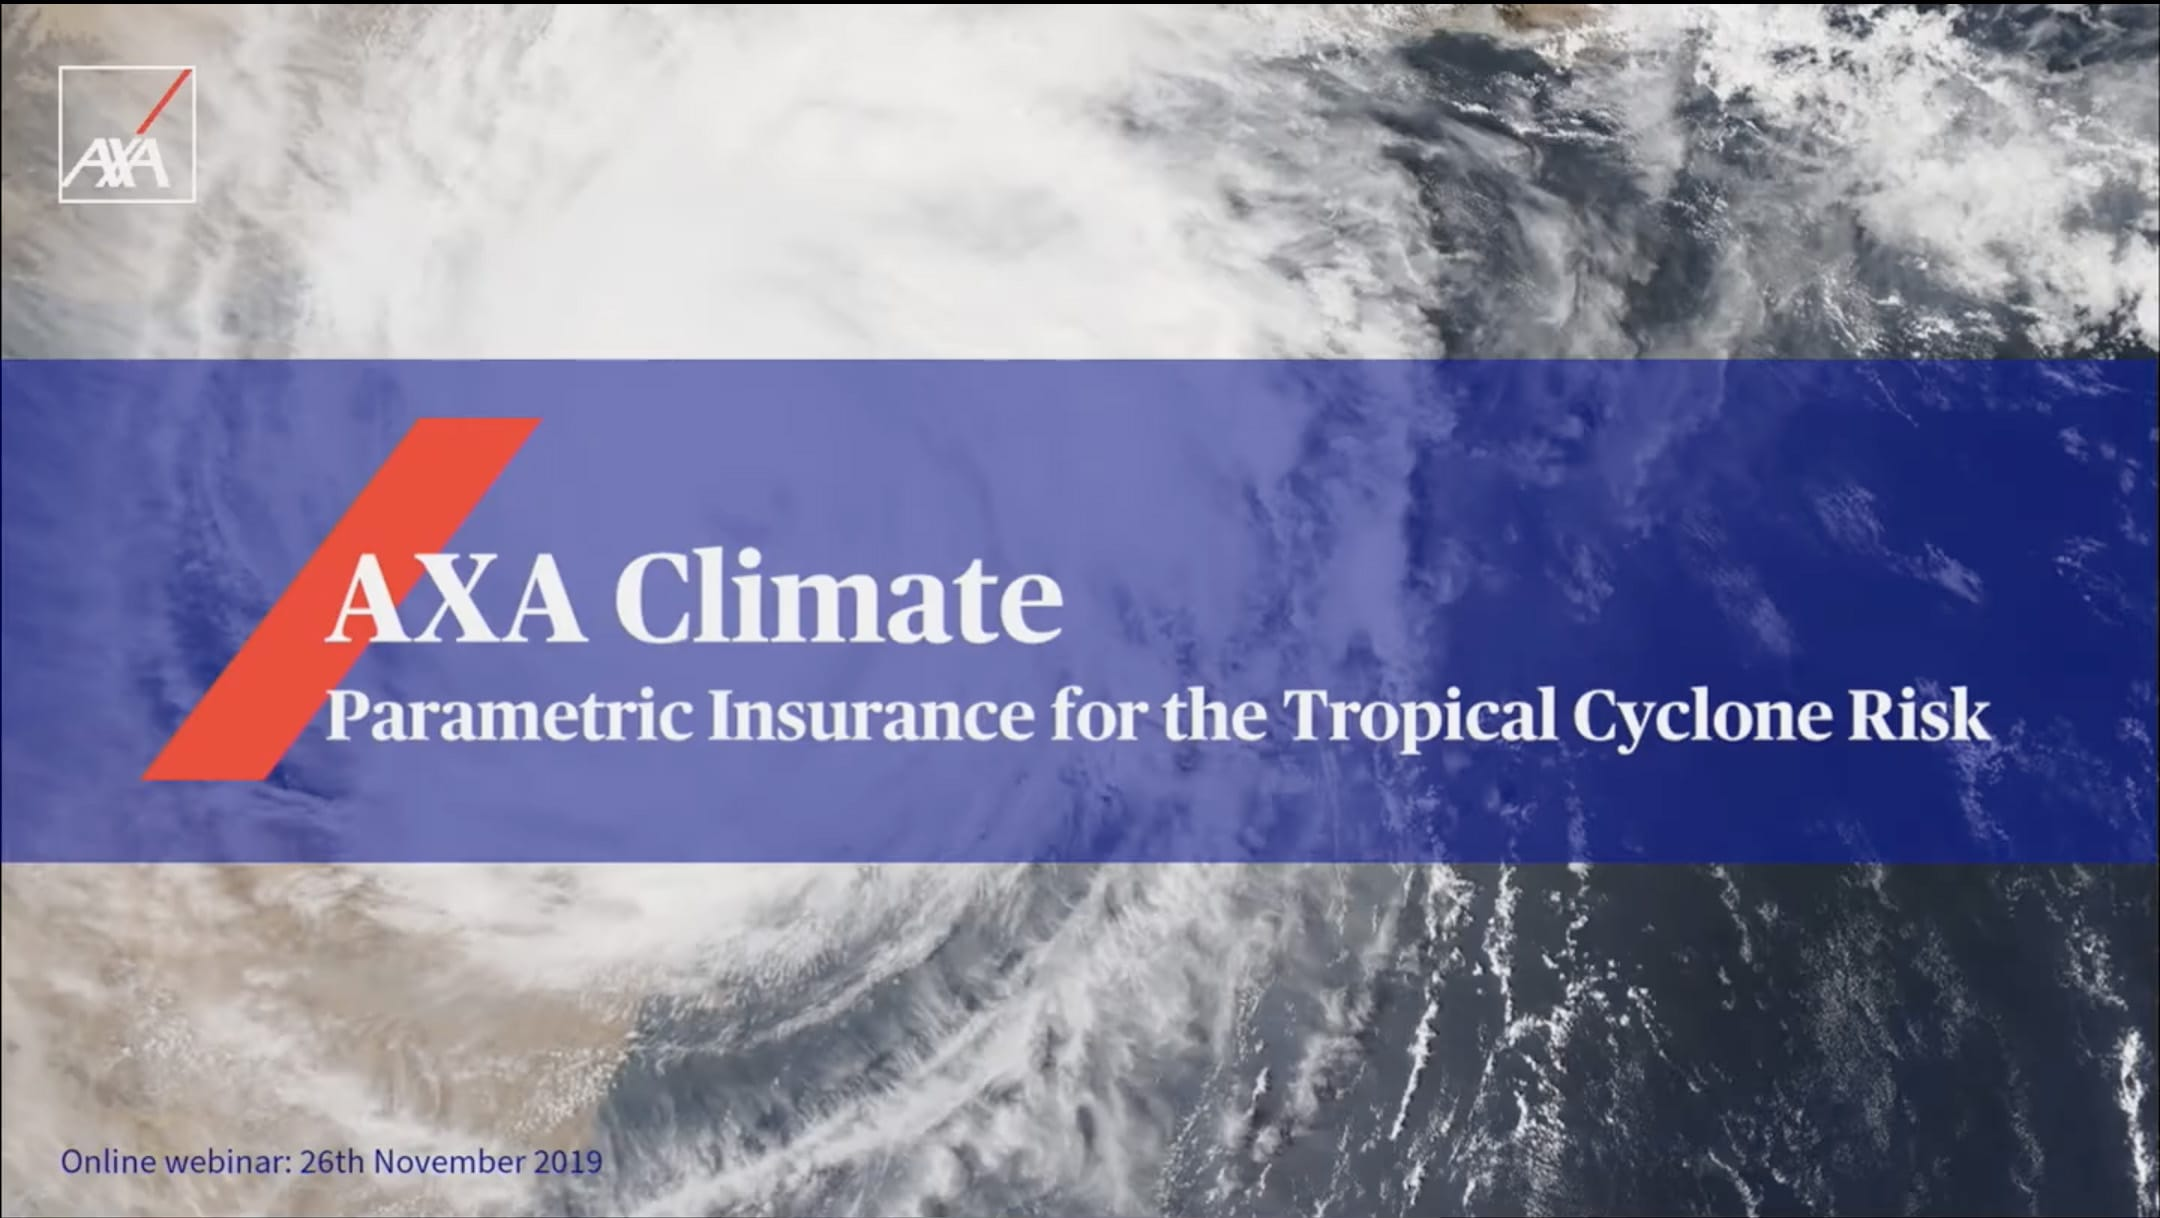 Parametric insurance for the tropical cyclone risk